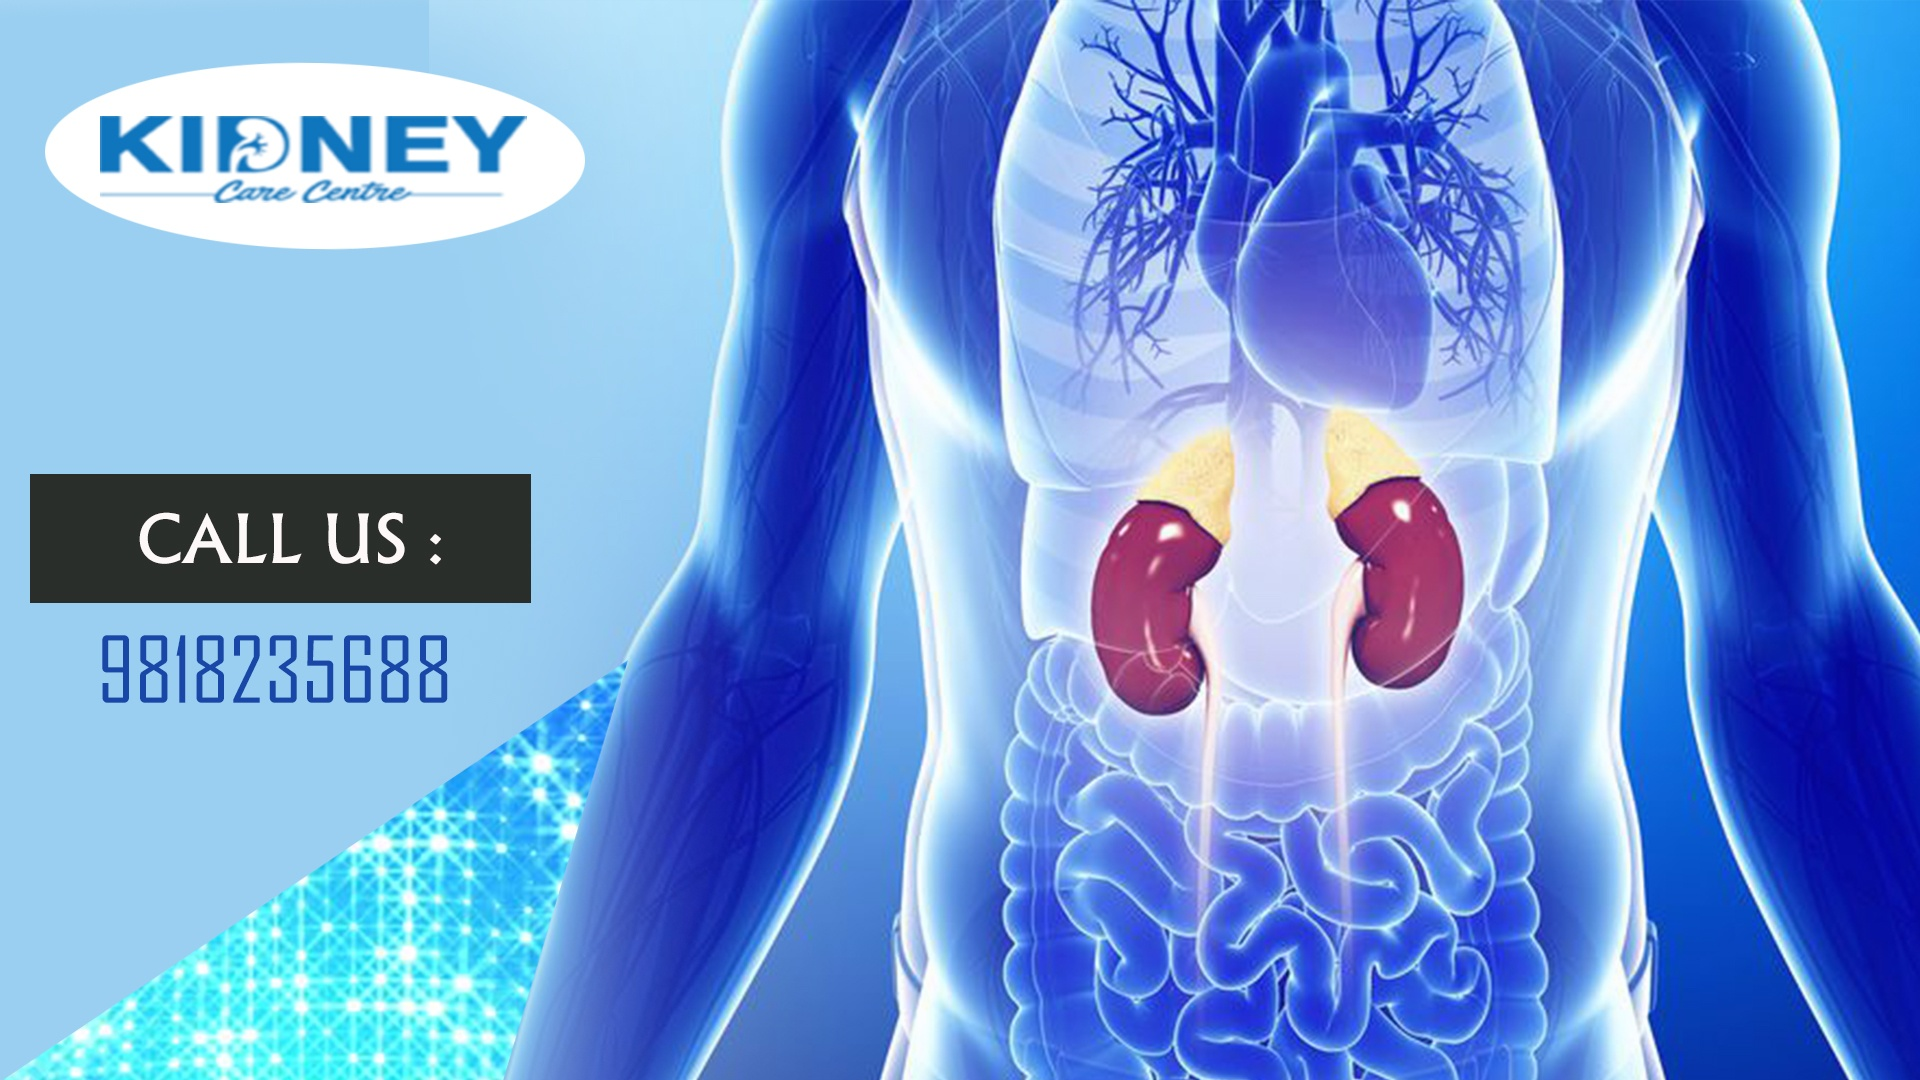 What Are The Names Of The Covers Of The Kidney Quora